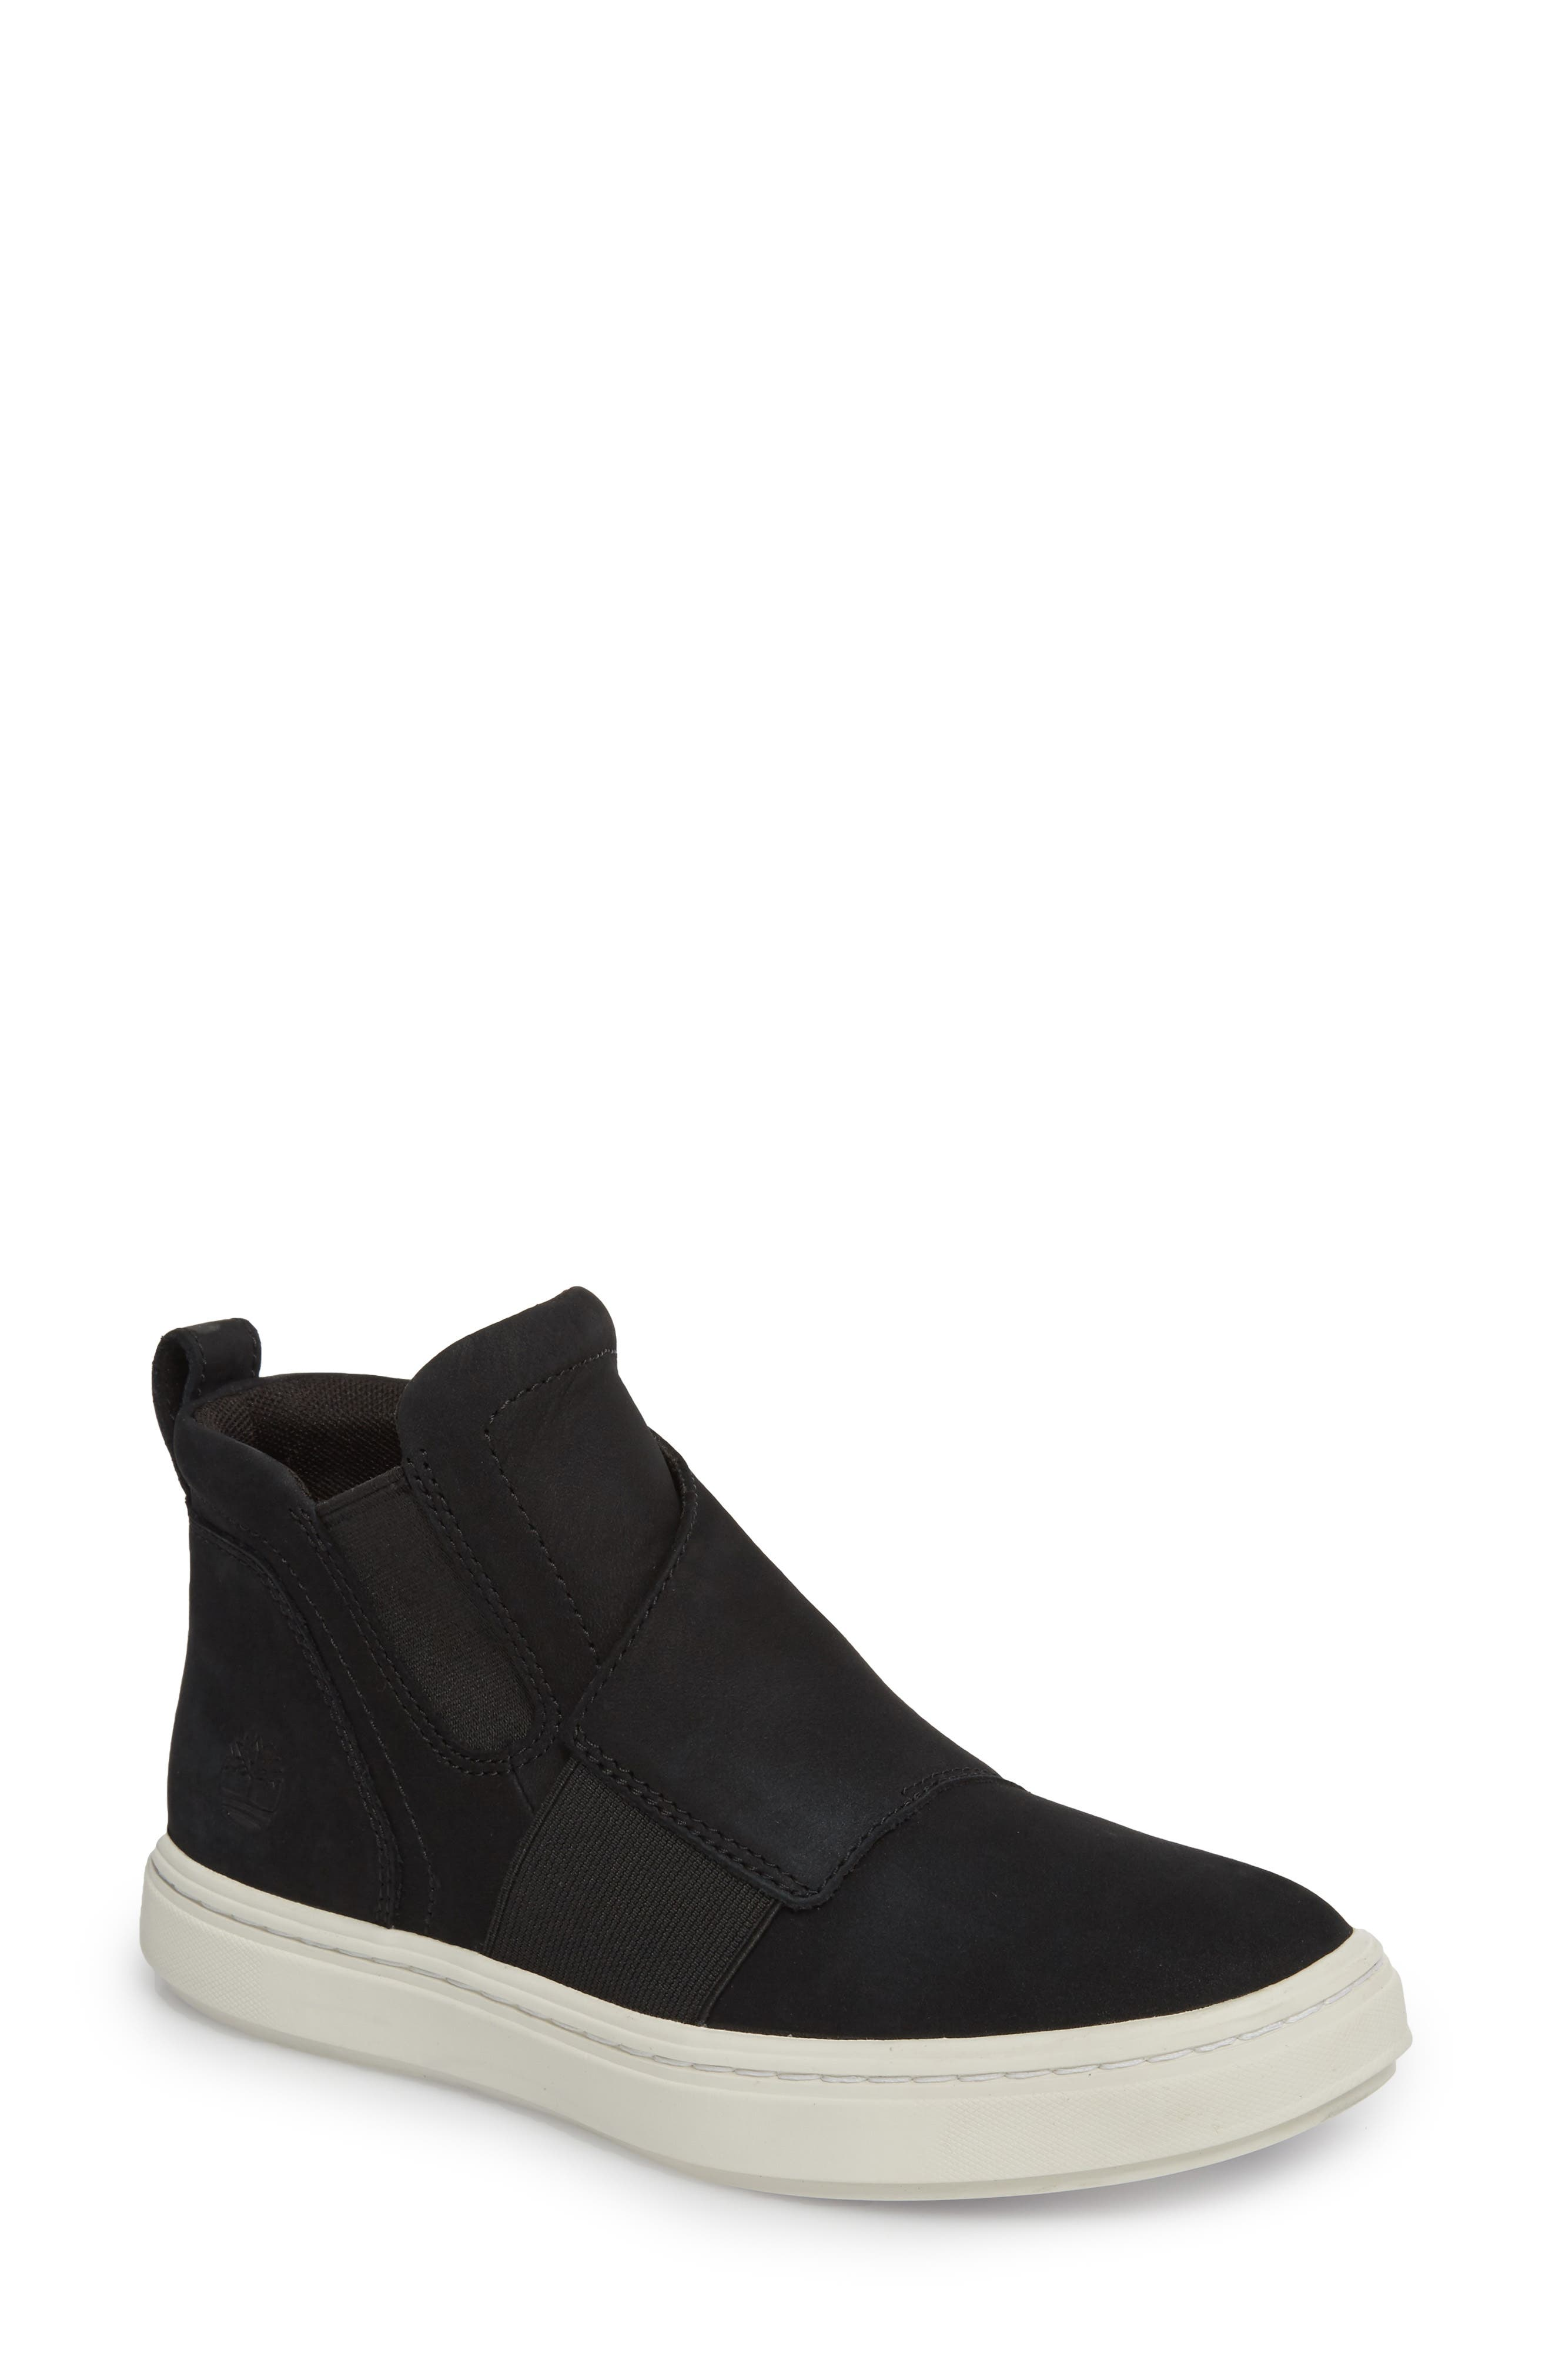 Londyn Chelsea Boot,                         Main,                         color, 001